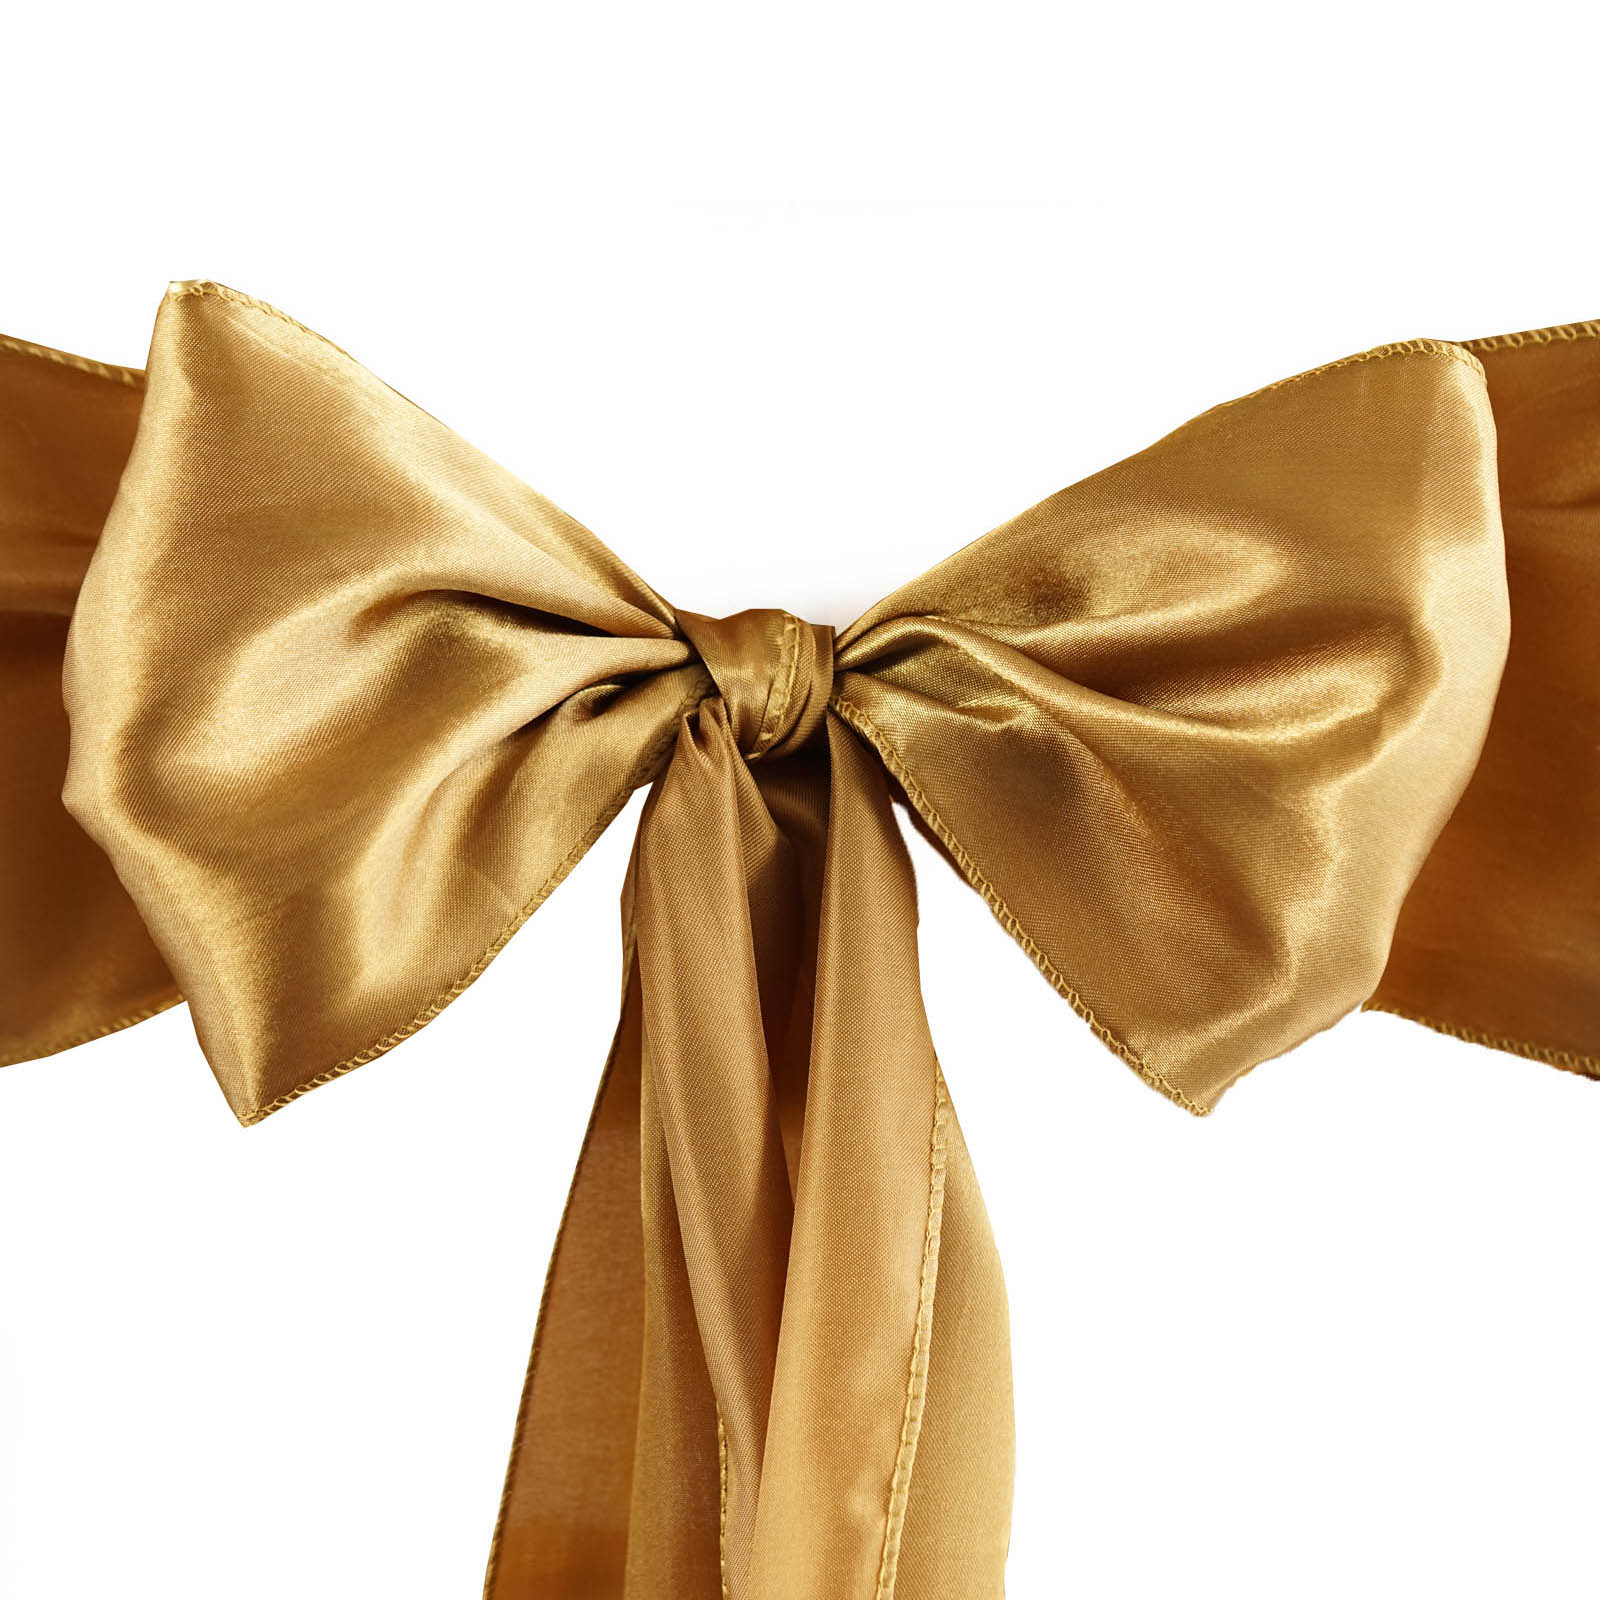 0a5a8deeb50f6 Details about 10 Antique Gold Satin CHAIR SASHES Ties Bows Wedding  Reception Decorations